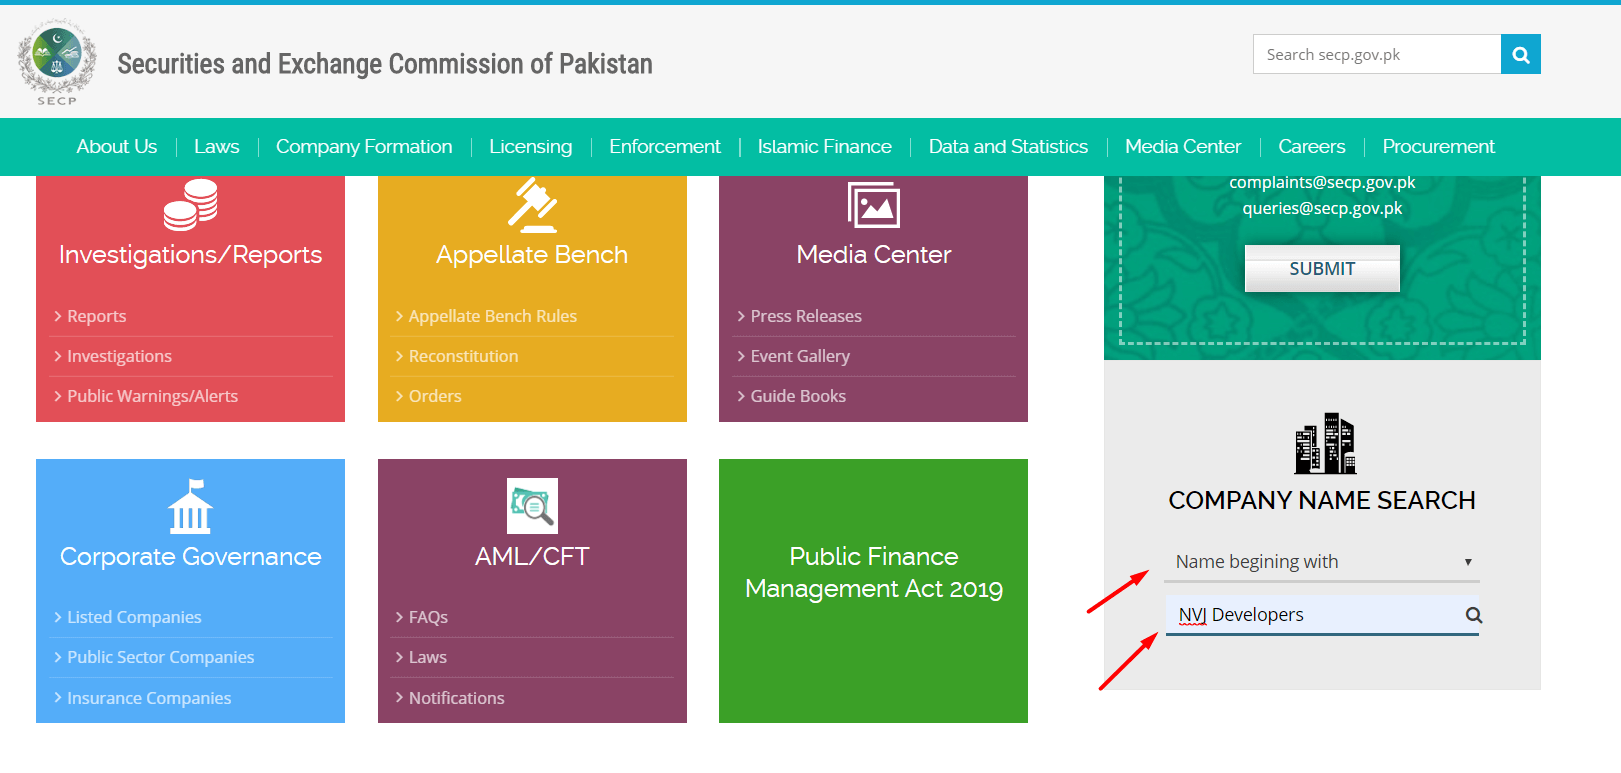 Check-Company-Name-in-SECP-Name-begining-with